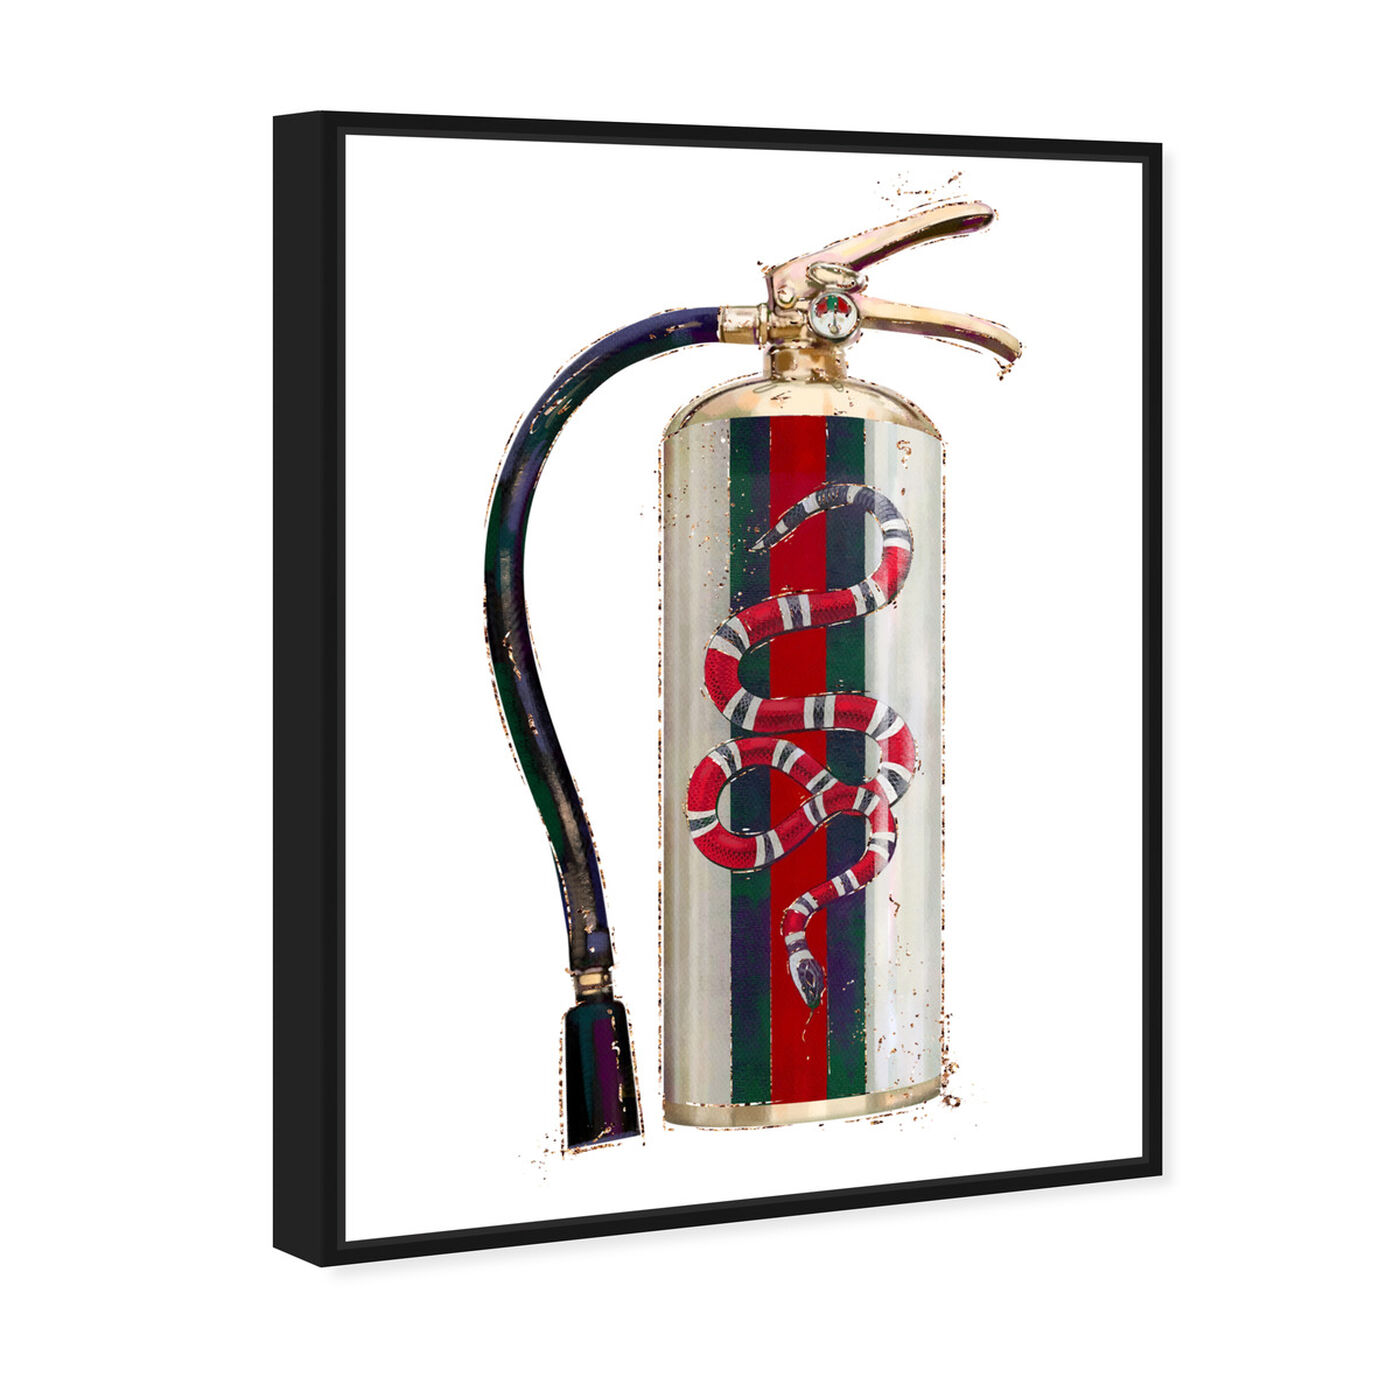 Angled view of Italian Extinguisher featuring animals and zoo and wild animals art.